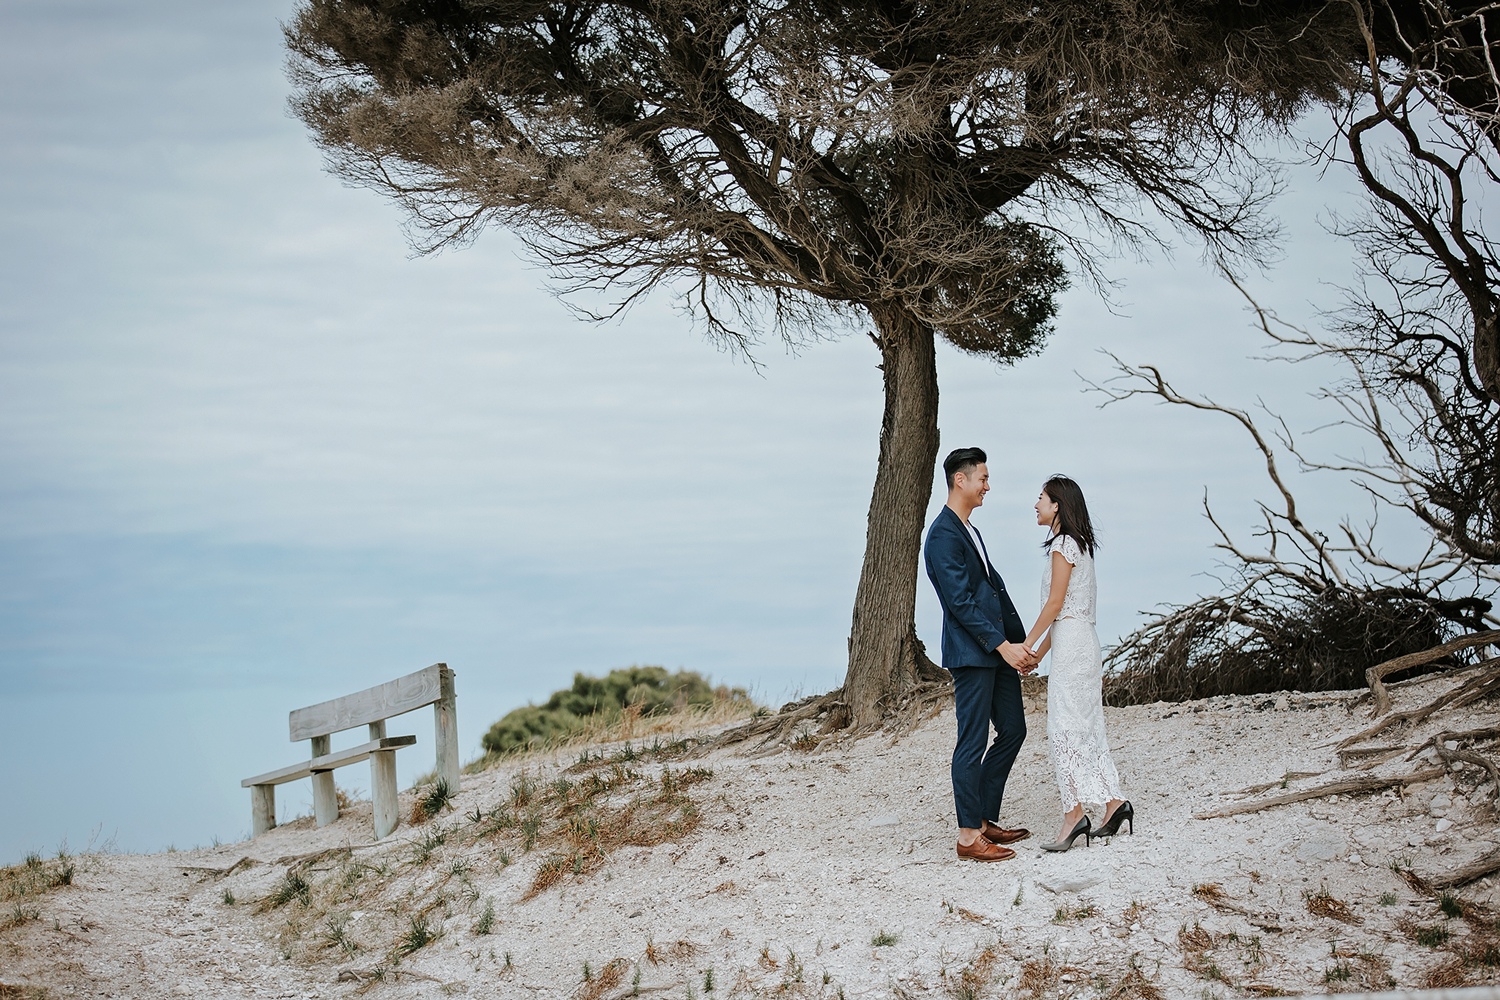 Perth Engagement Photography Cathy Britton.jpg